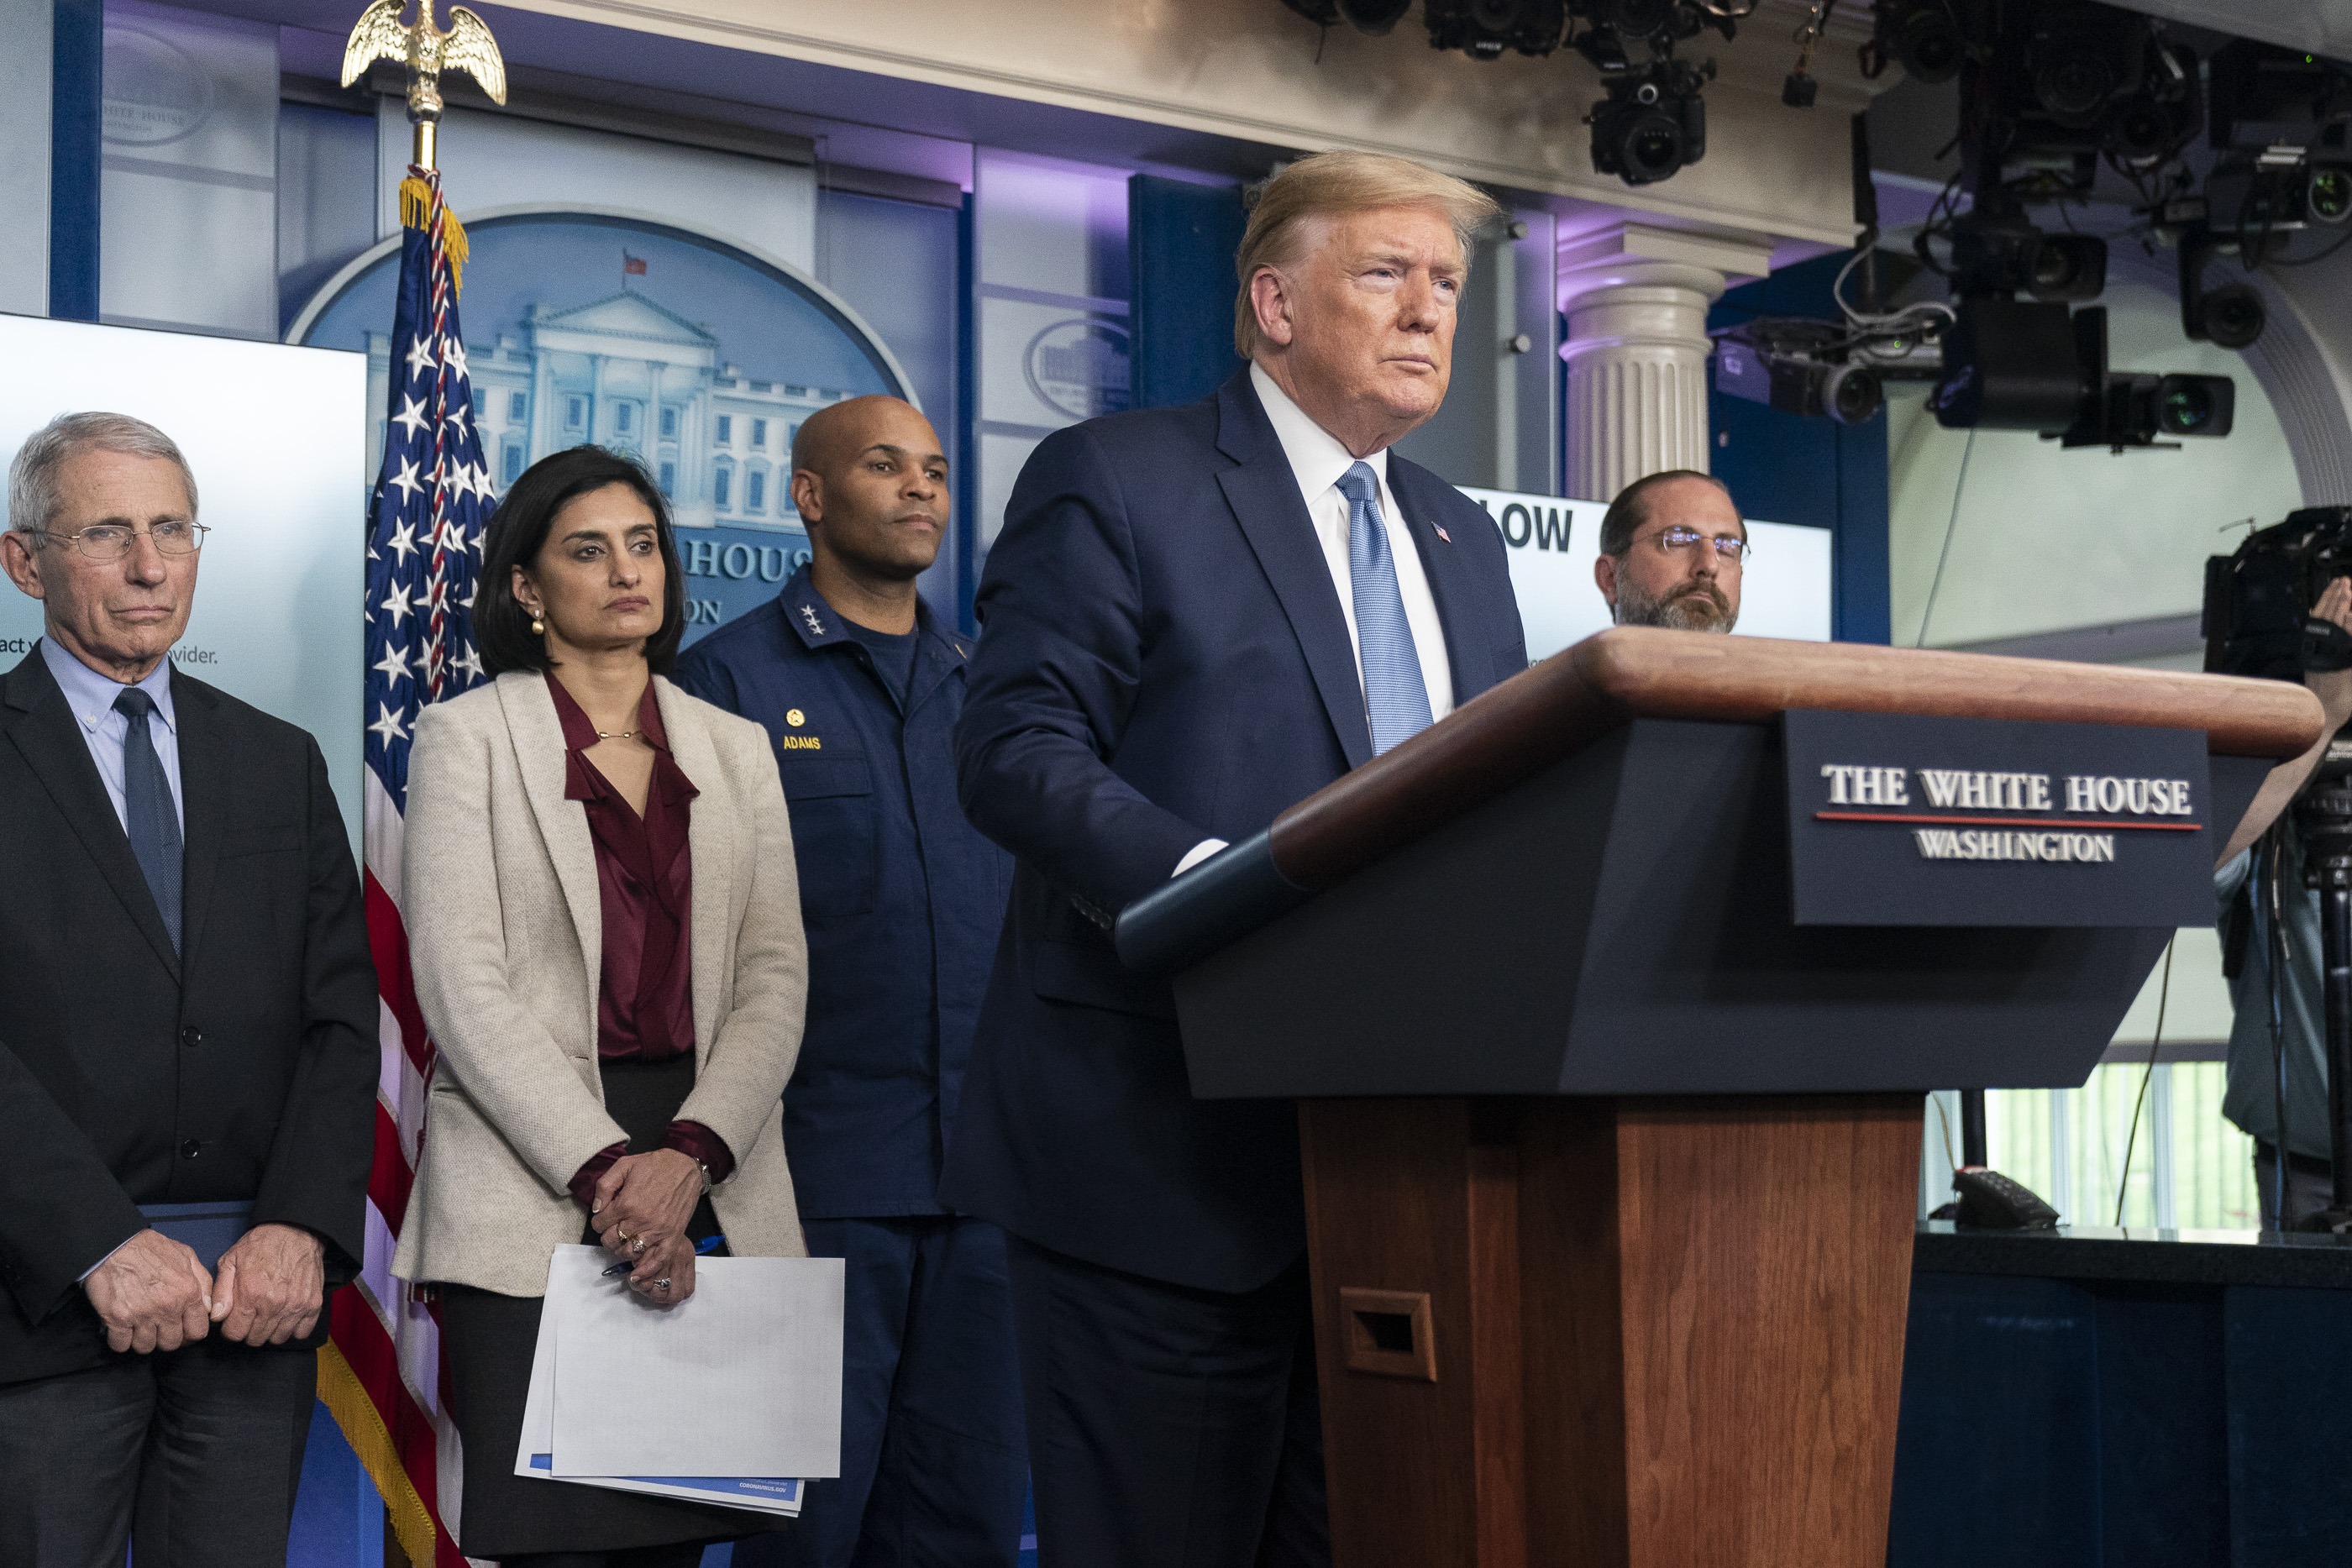 President Donald Trump joined members of the White House Coronavirus Task Force during a coronavirus update briefing Monday, March 16, 2020 in the James S. Brady Press Briefing Room of the White House (Official White House Photo by Shealah Craighead)